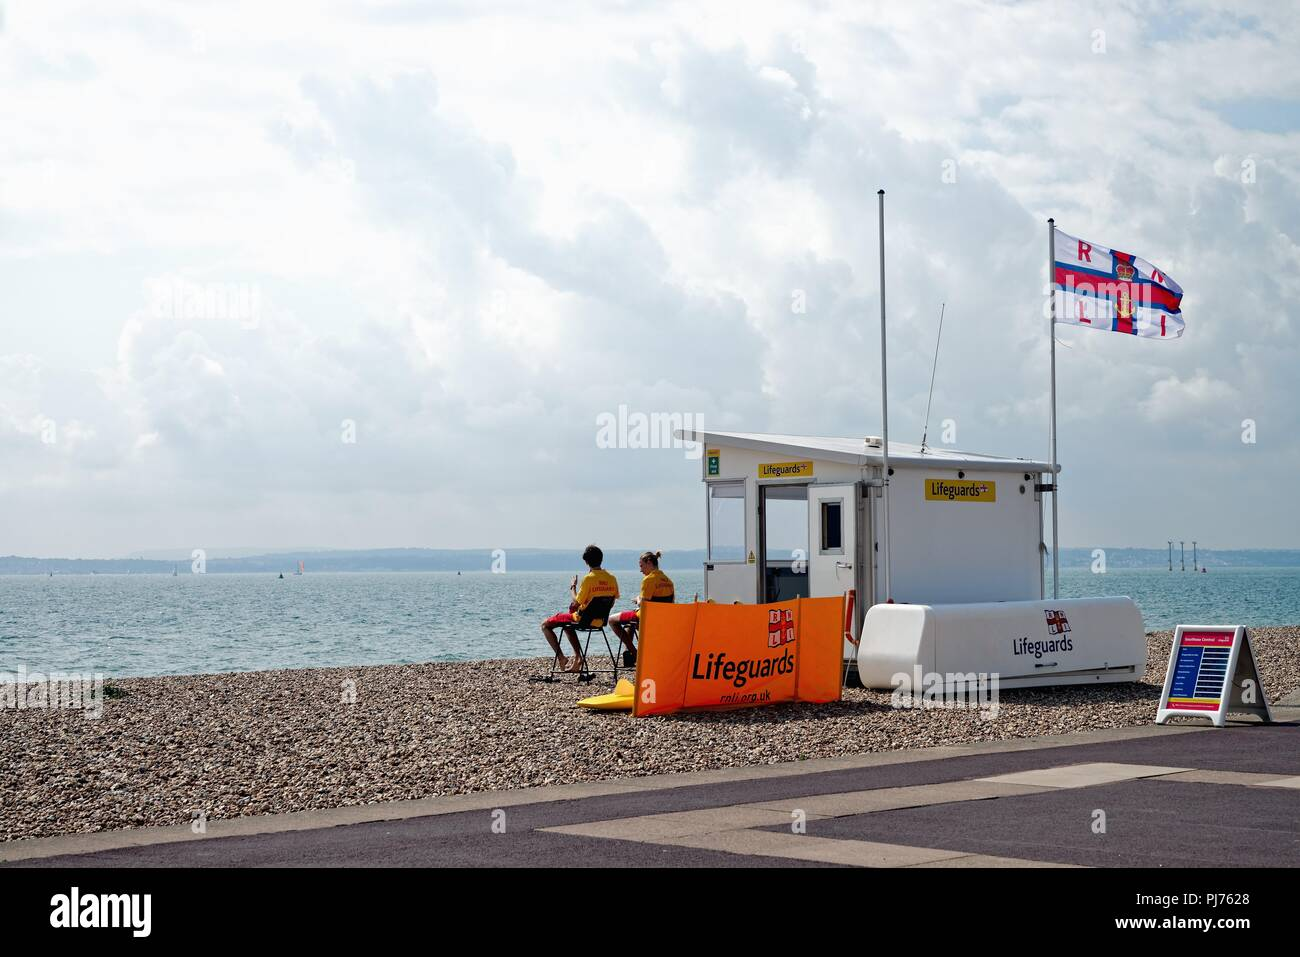 Lifeguards and lifeguard station on the beach at Southsea Hampshire England UK Stock Photo